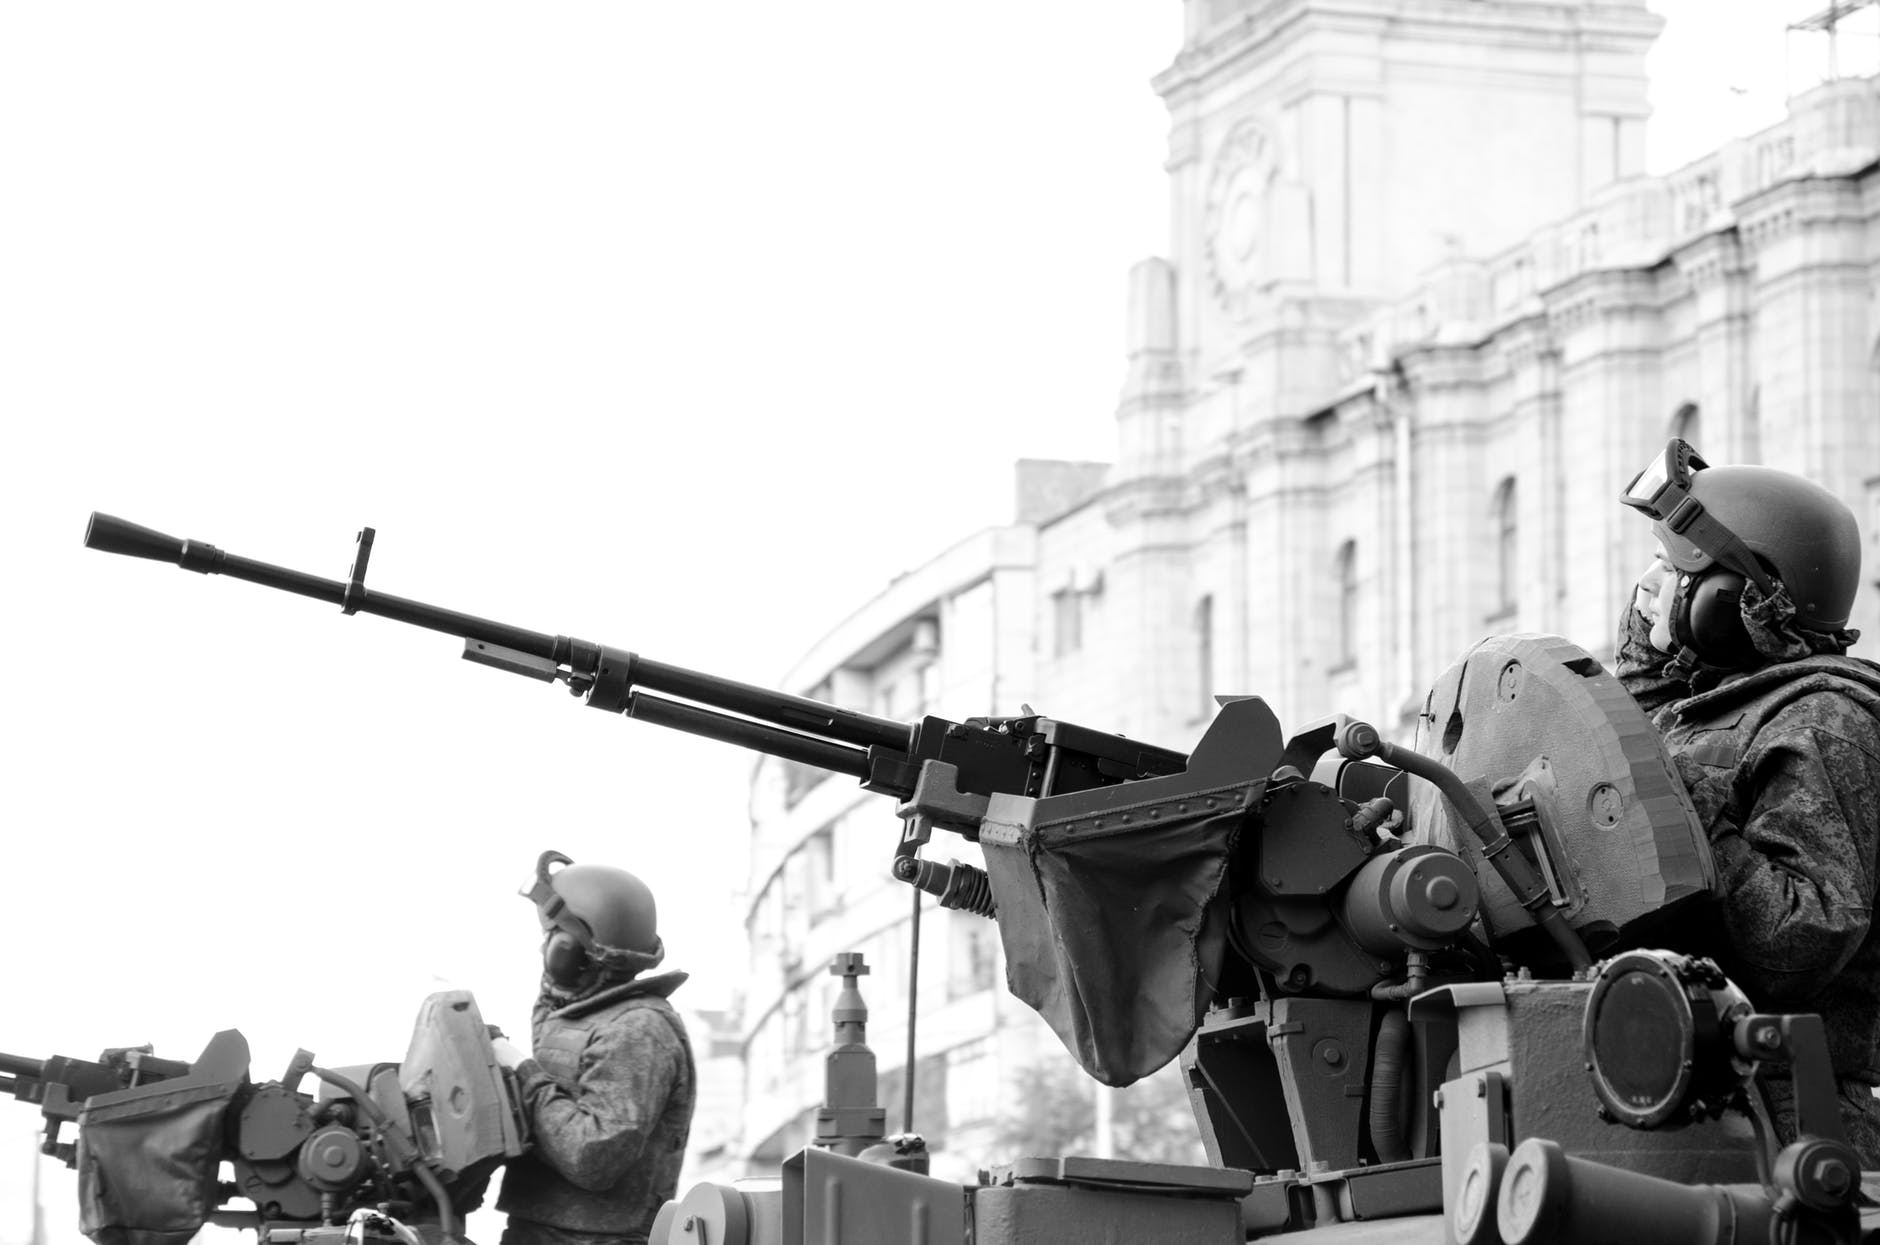 World War II: Causes, Effects, And Aftermath